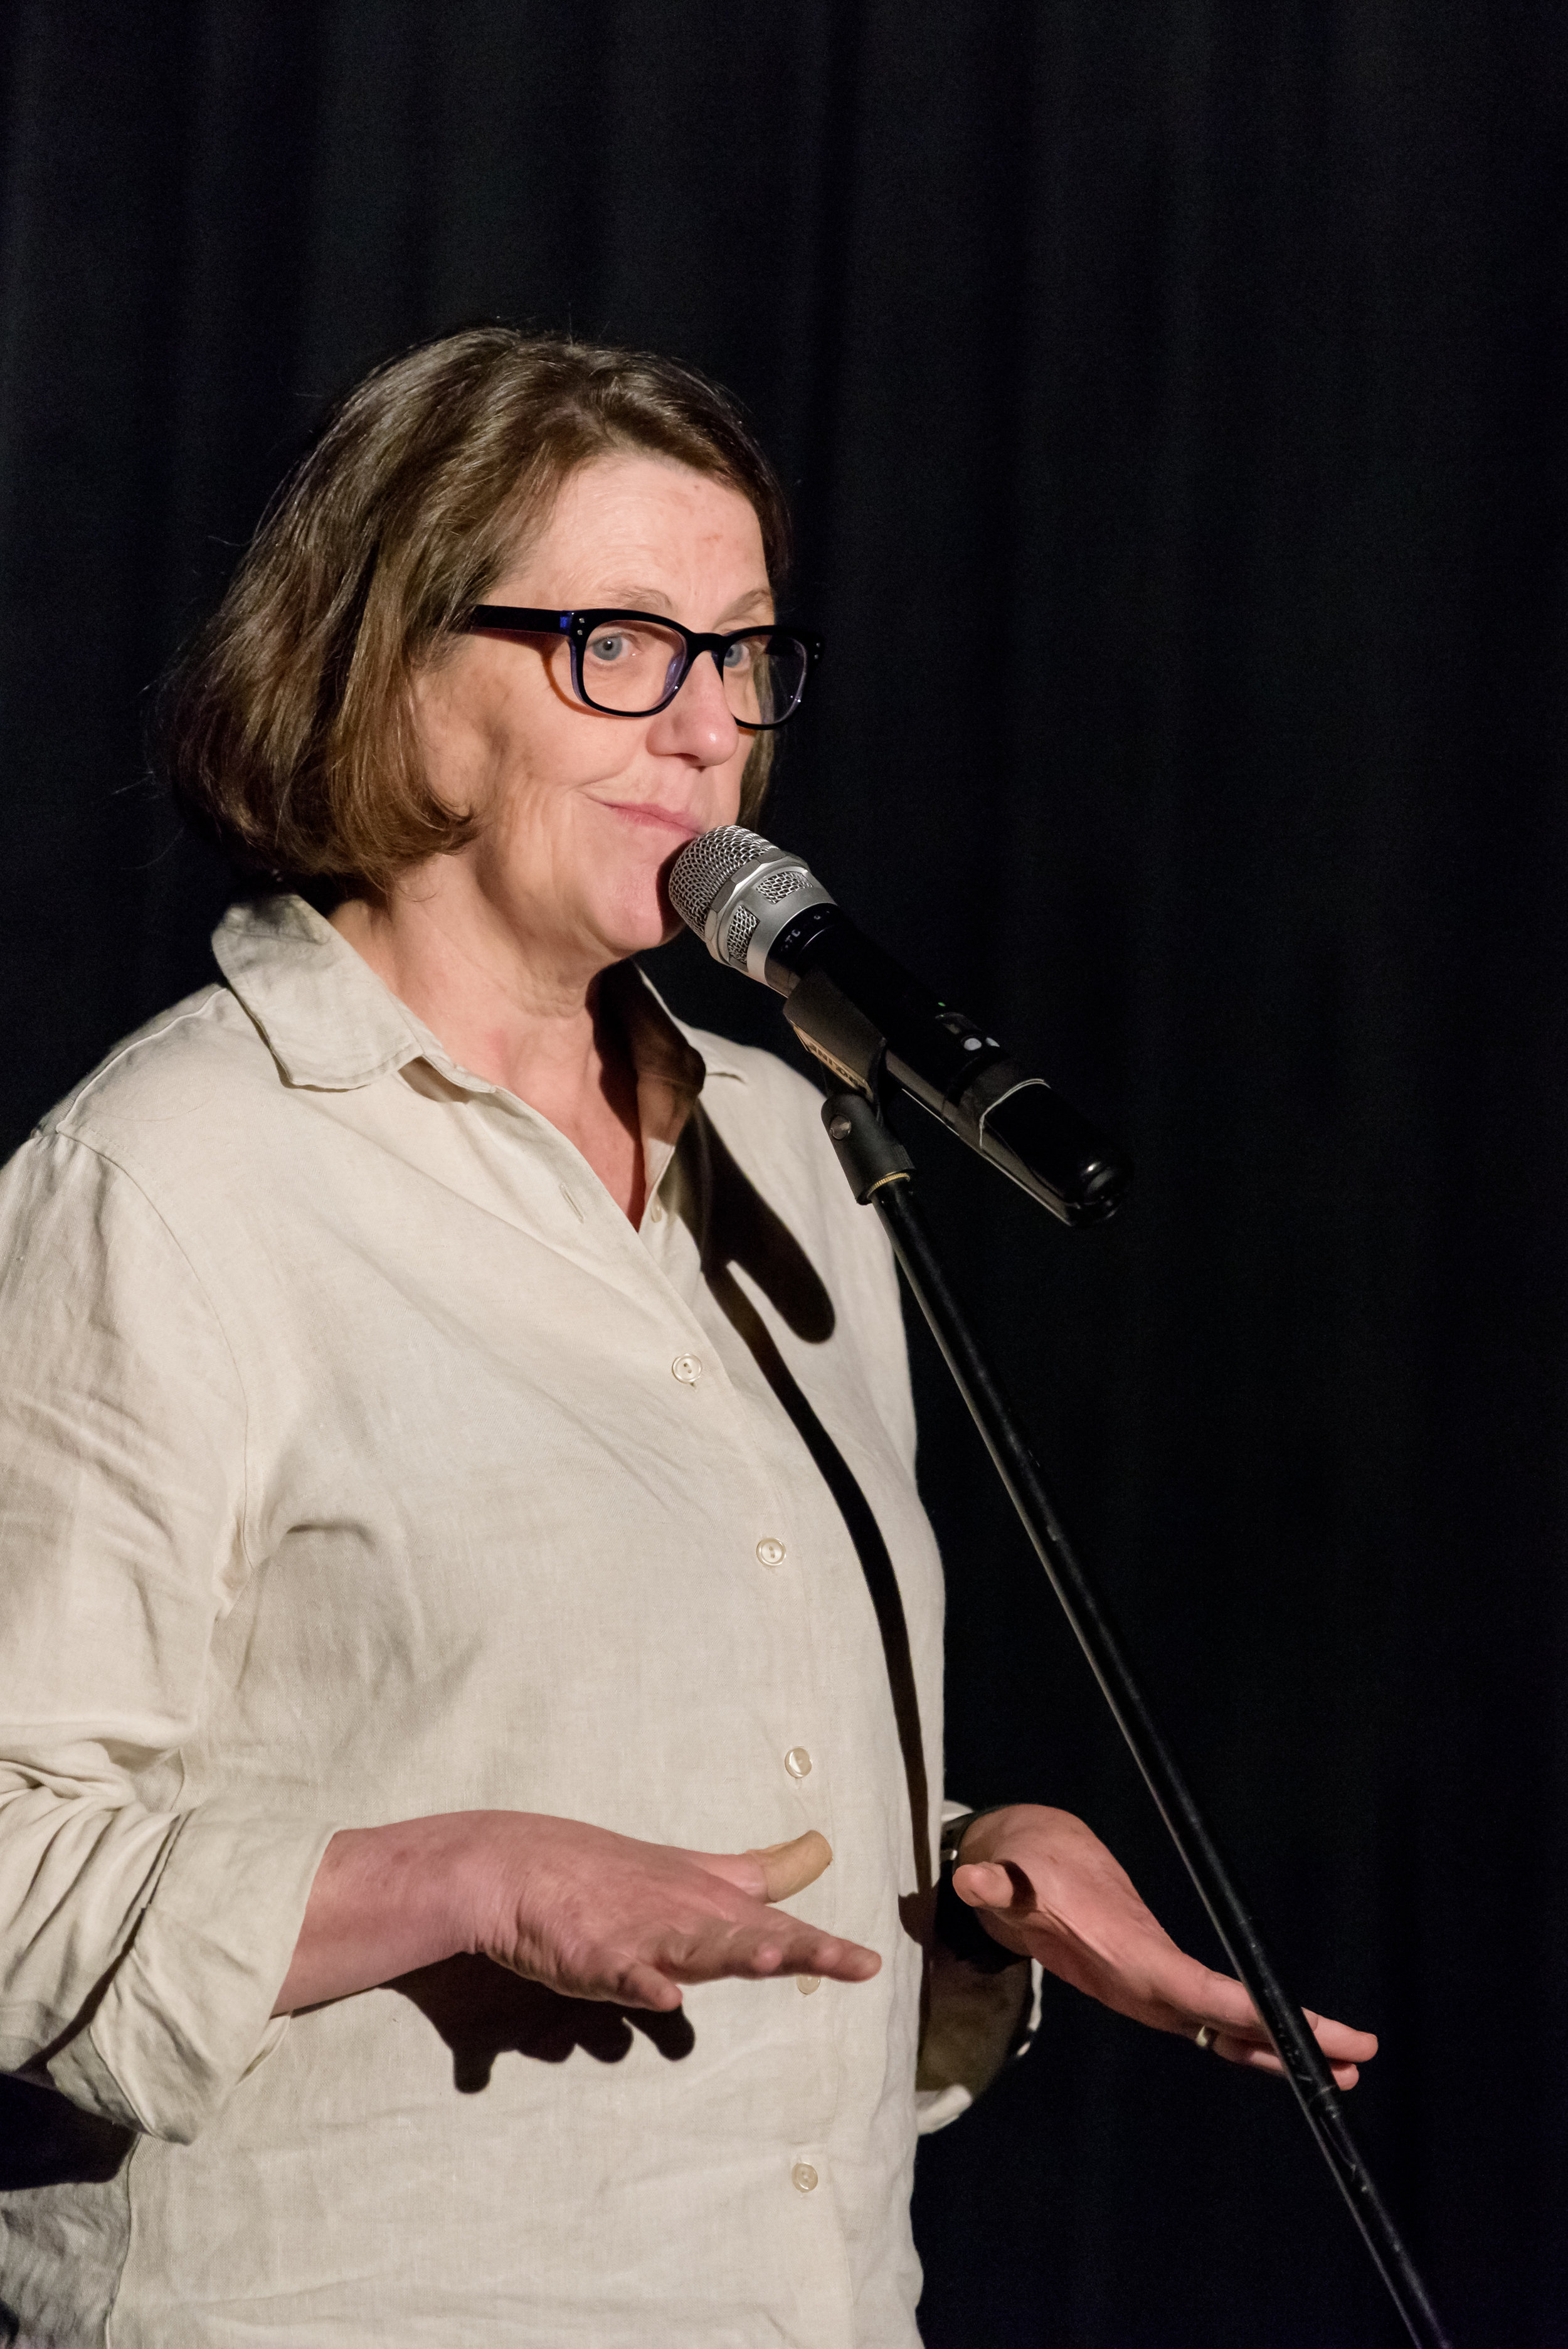 Margaret Rubega shares her story at Real Art Ways in Hartford, CT in October 2018. Photo by Nick Caito.